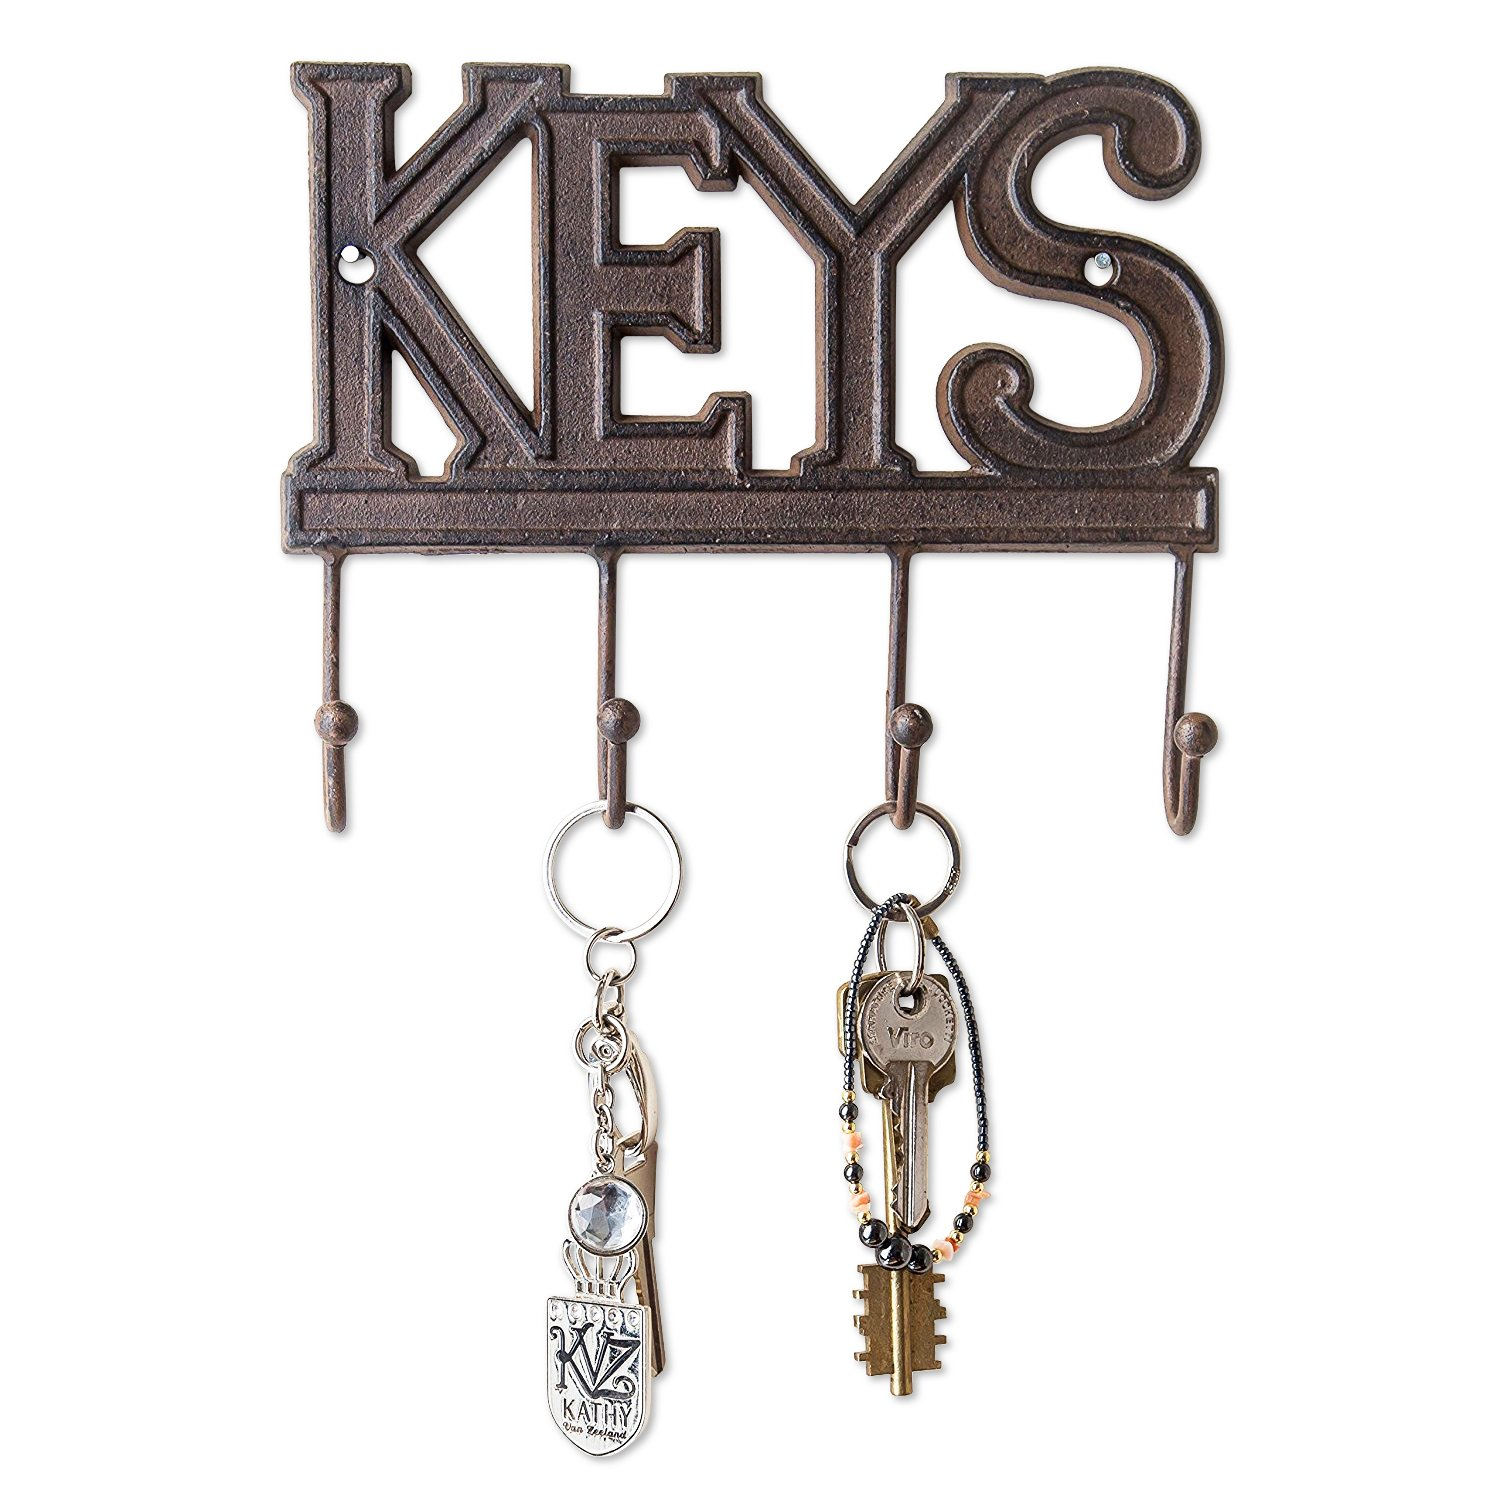 Comfify Key Holder - Keys - Wall Mounted Key Hook - Rustic Western Cast Iron Key Hanger - Decorative Key Organizer Rack with 4 Hooks - With Screws and Anchors - 6x8 inches (Rust Brown) CM0007